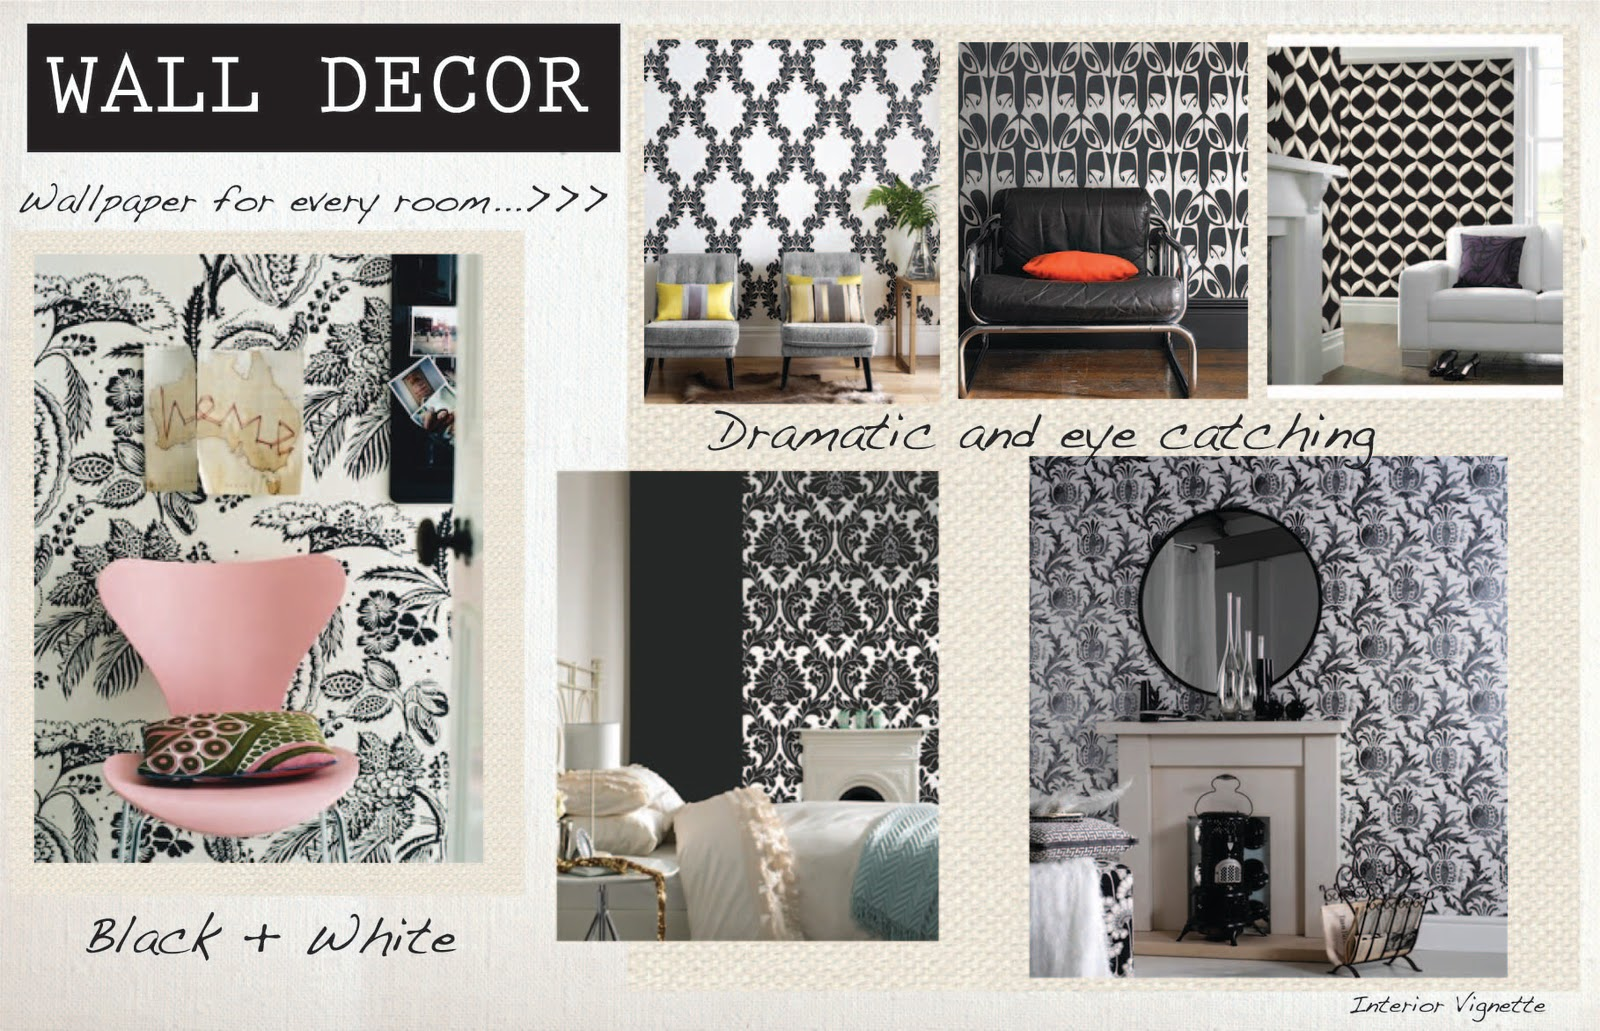 WALL DECOR BLACK WHITE WALLPAPER